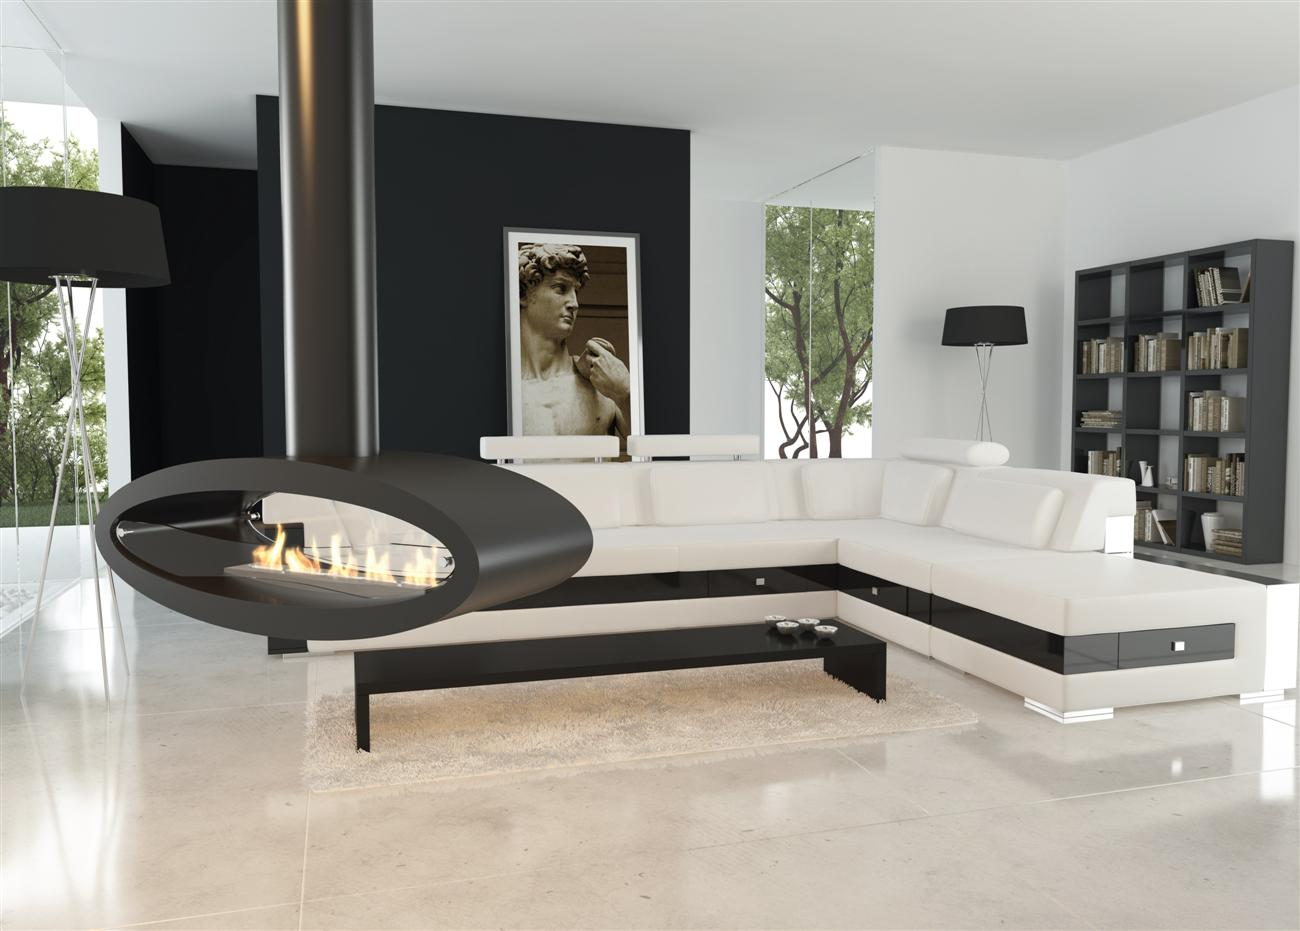 decoflame ellipse ethanolkamin zum aufh ngen oder aufstellen. Black Bedroom Furniture Sets. Home Design Ideas